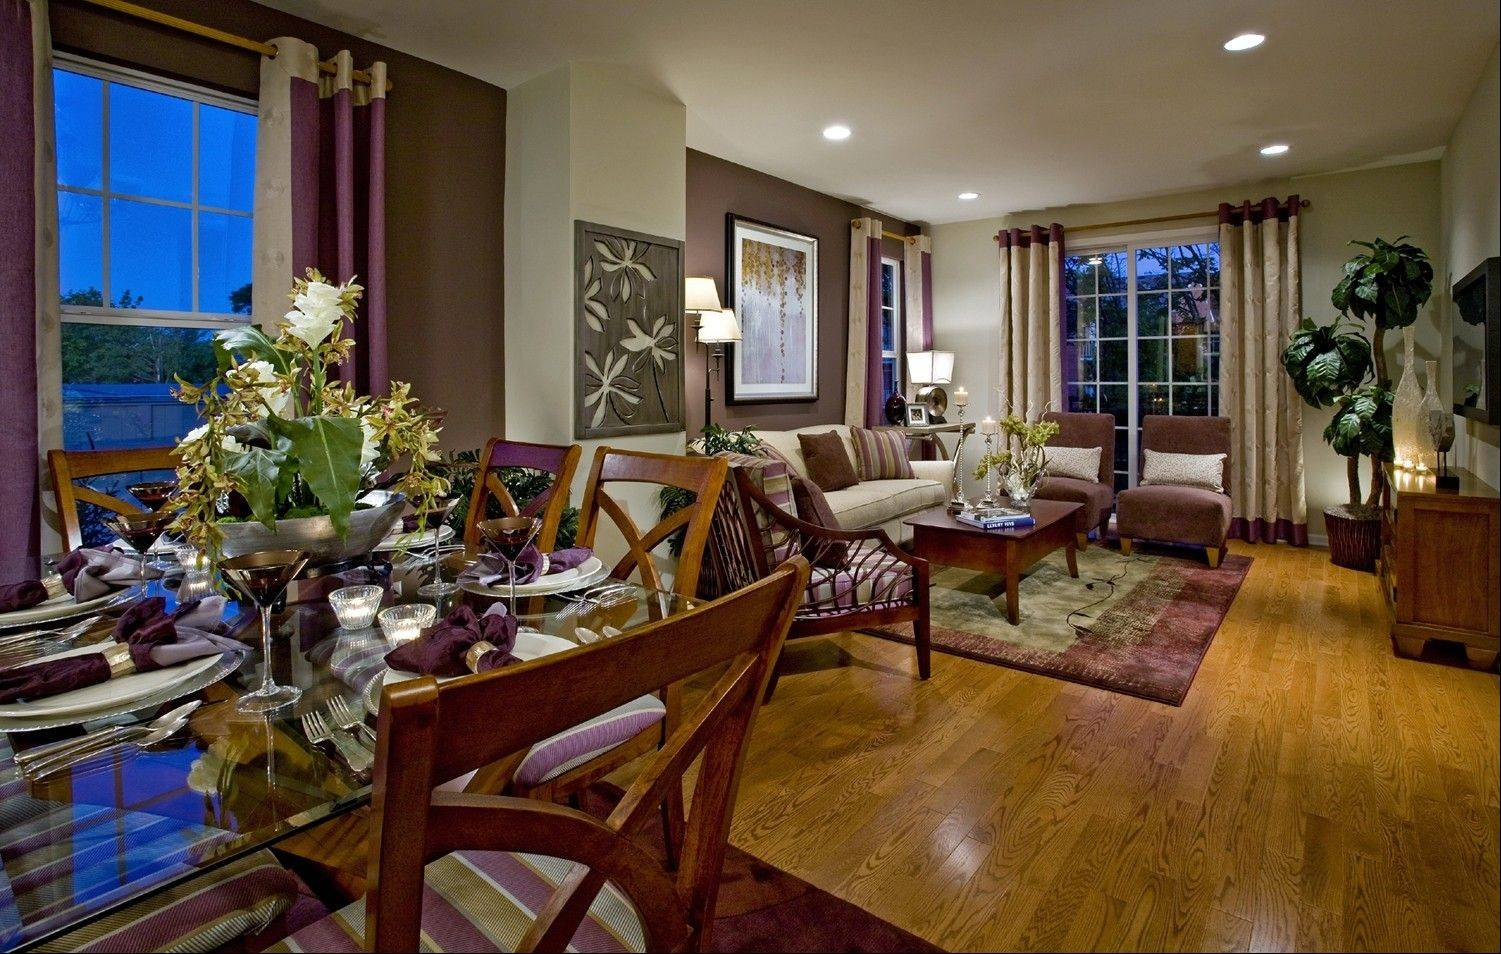 Lexington Homes has six row homes featuring two or three bedrooms, available at their Lexington Park2 community in Des Plaines.